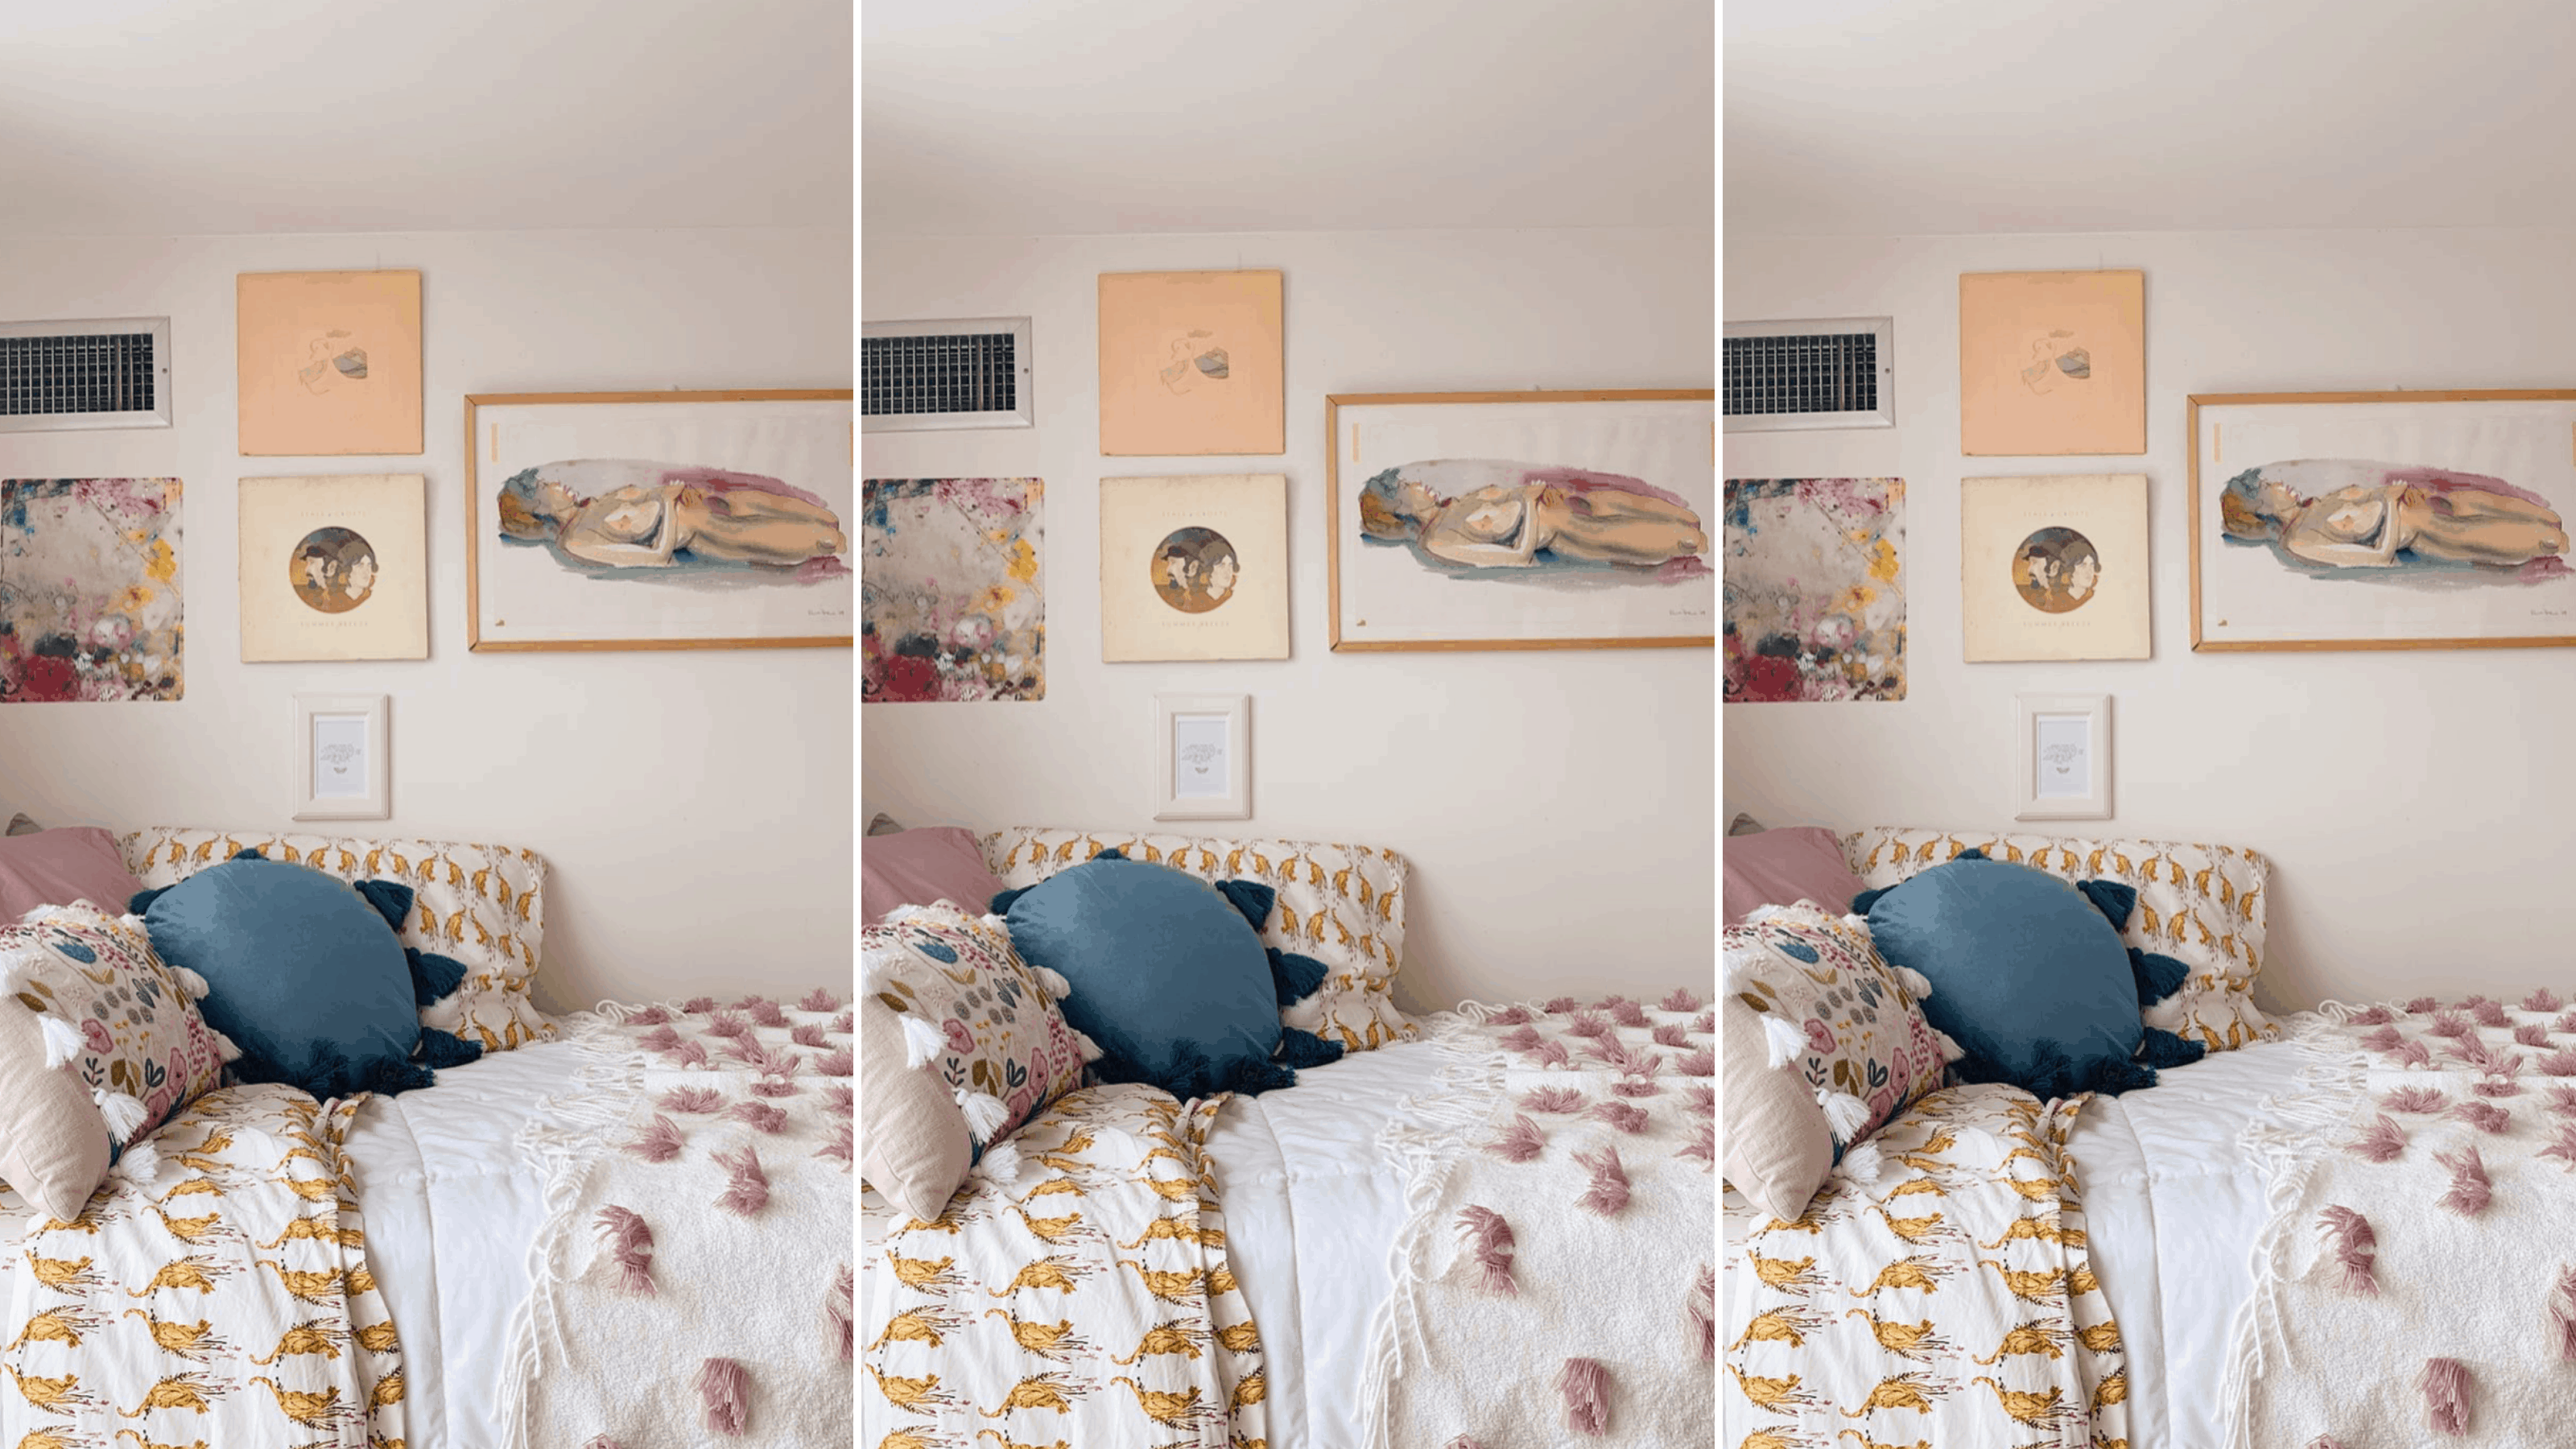 The Best 2020 Dorm Room Decor That Will Completely Transform Your Space By Sophia Lee